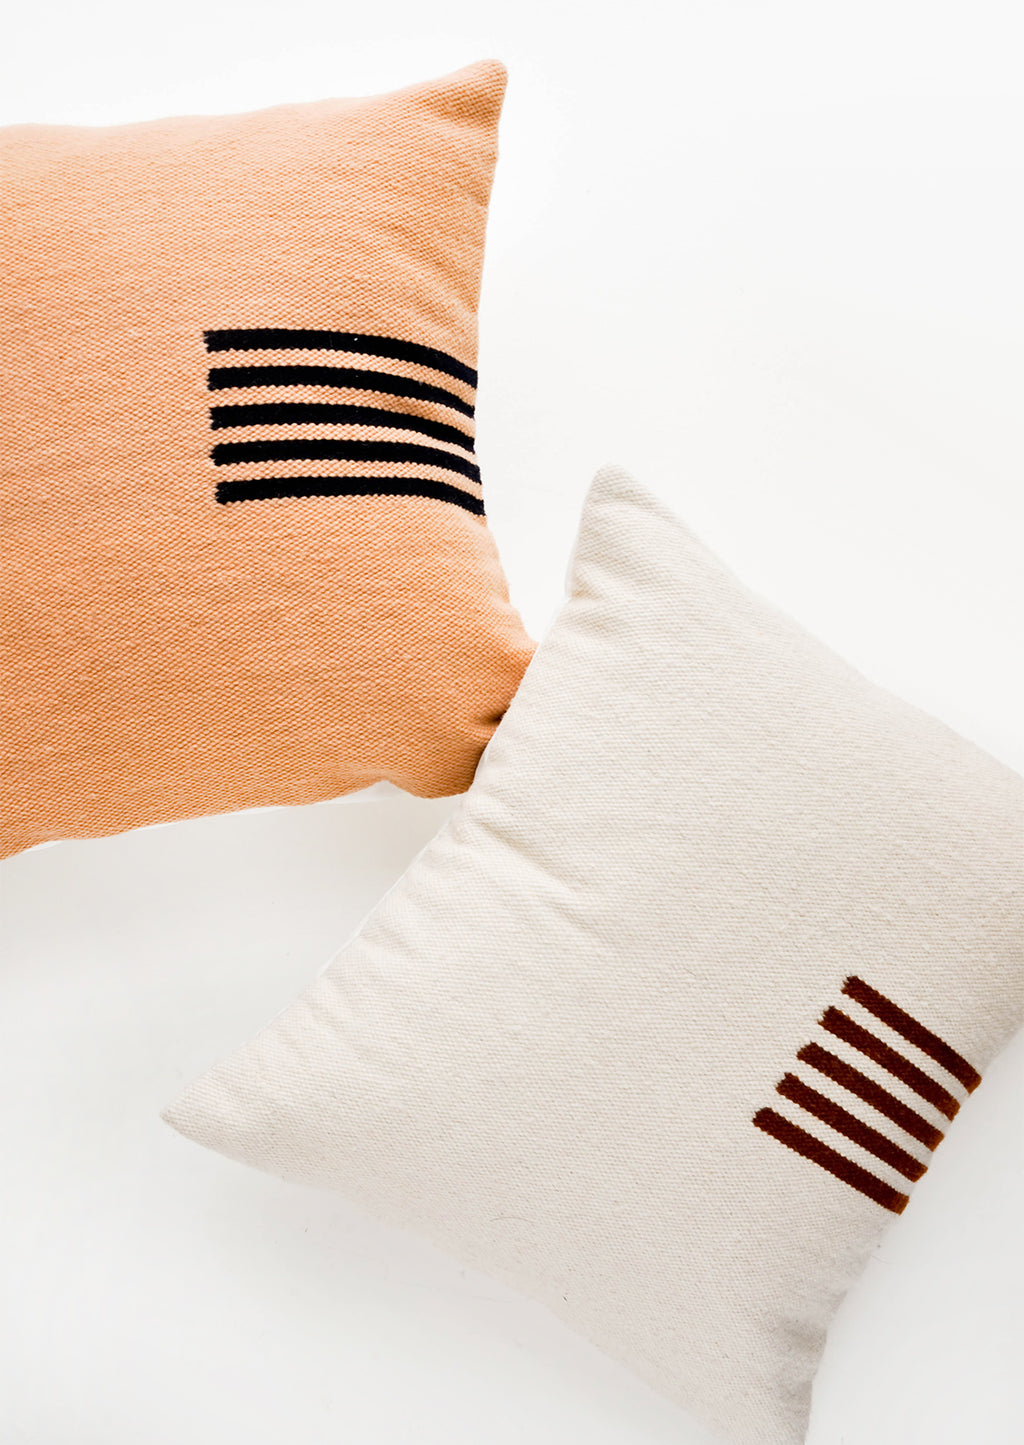 2: Square wool throw pillows with contrasting small stripe detail at side.